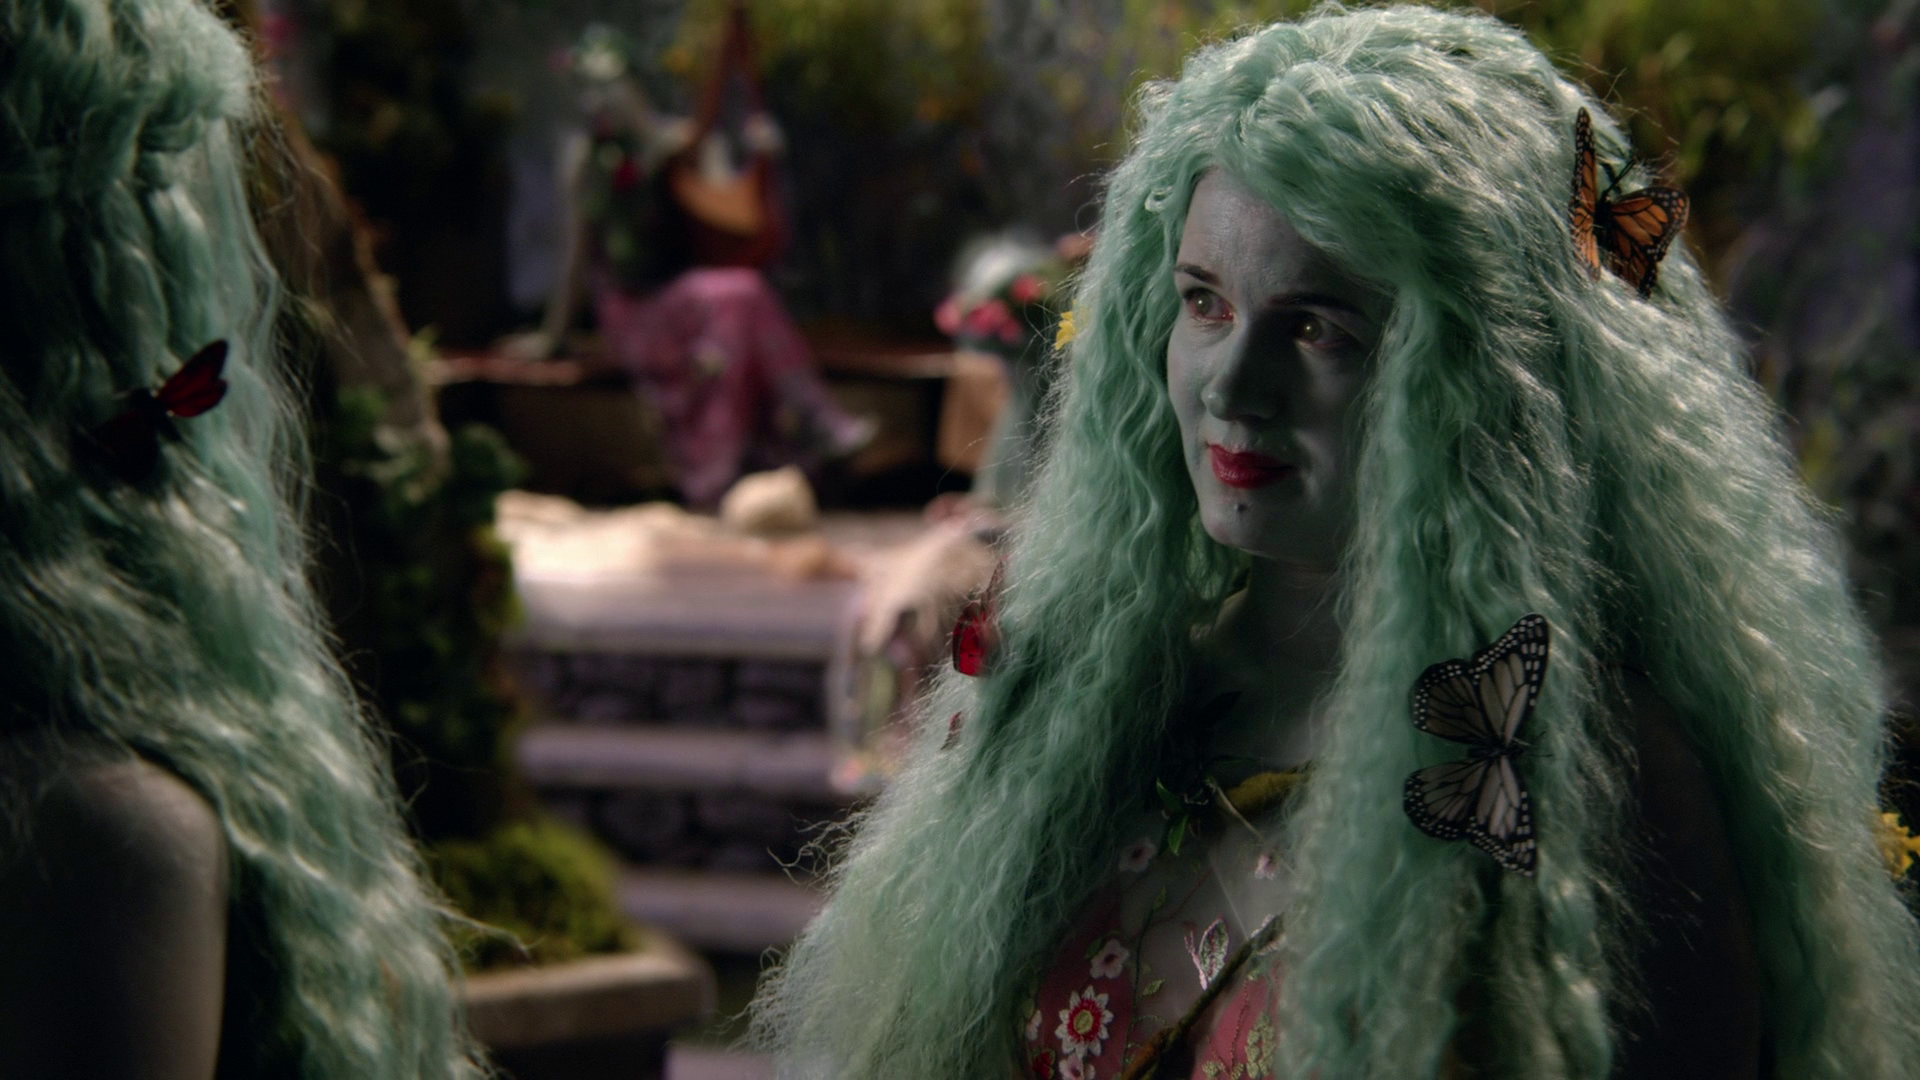 Flora | Once Upon a Time Wiki | FANDOM powered by Wikia